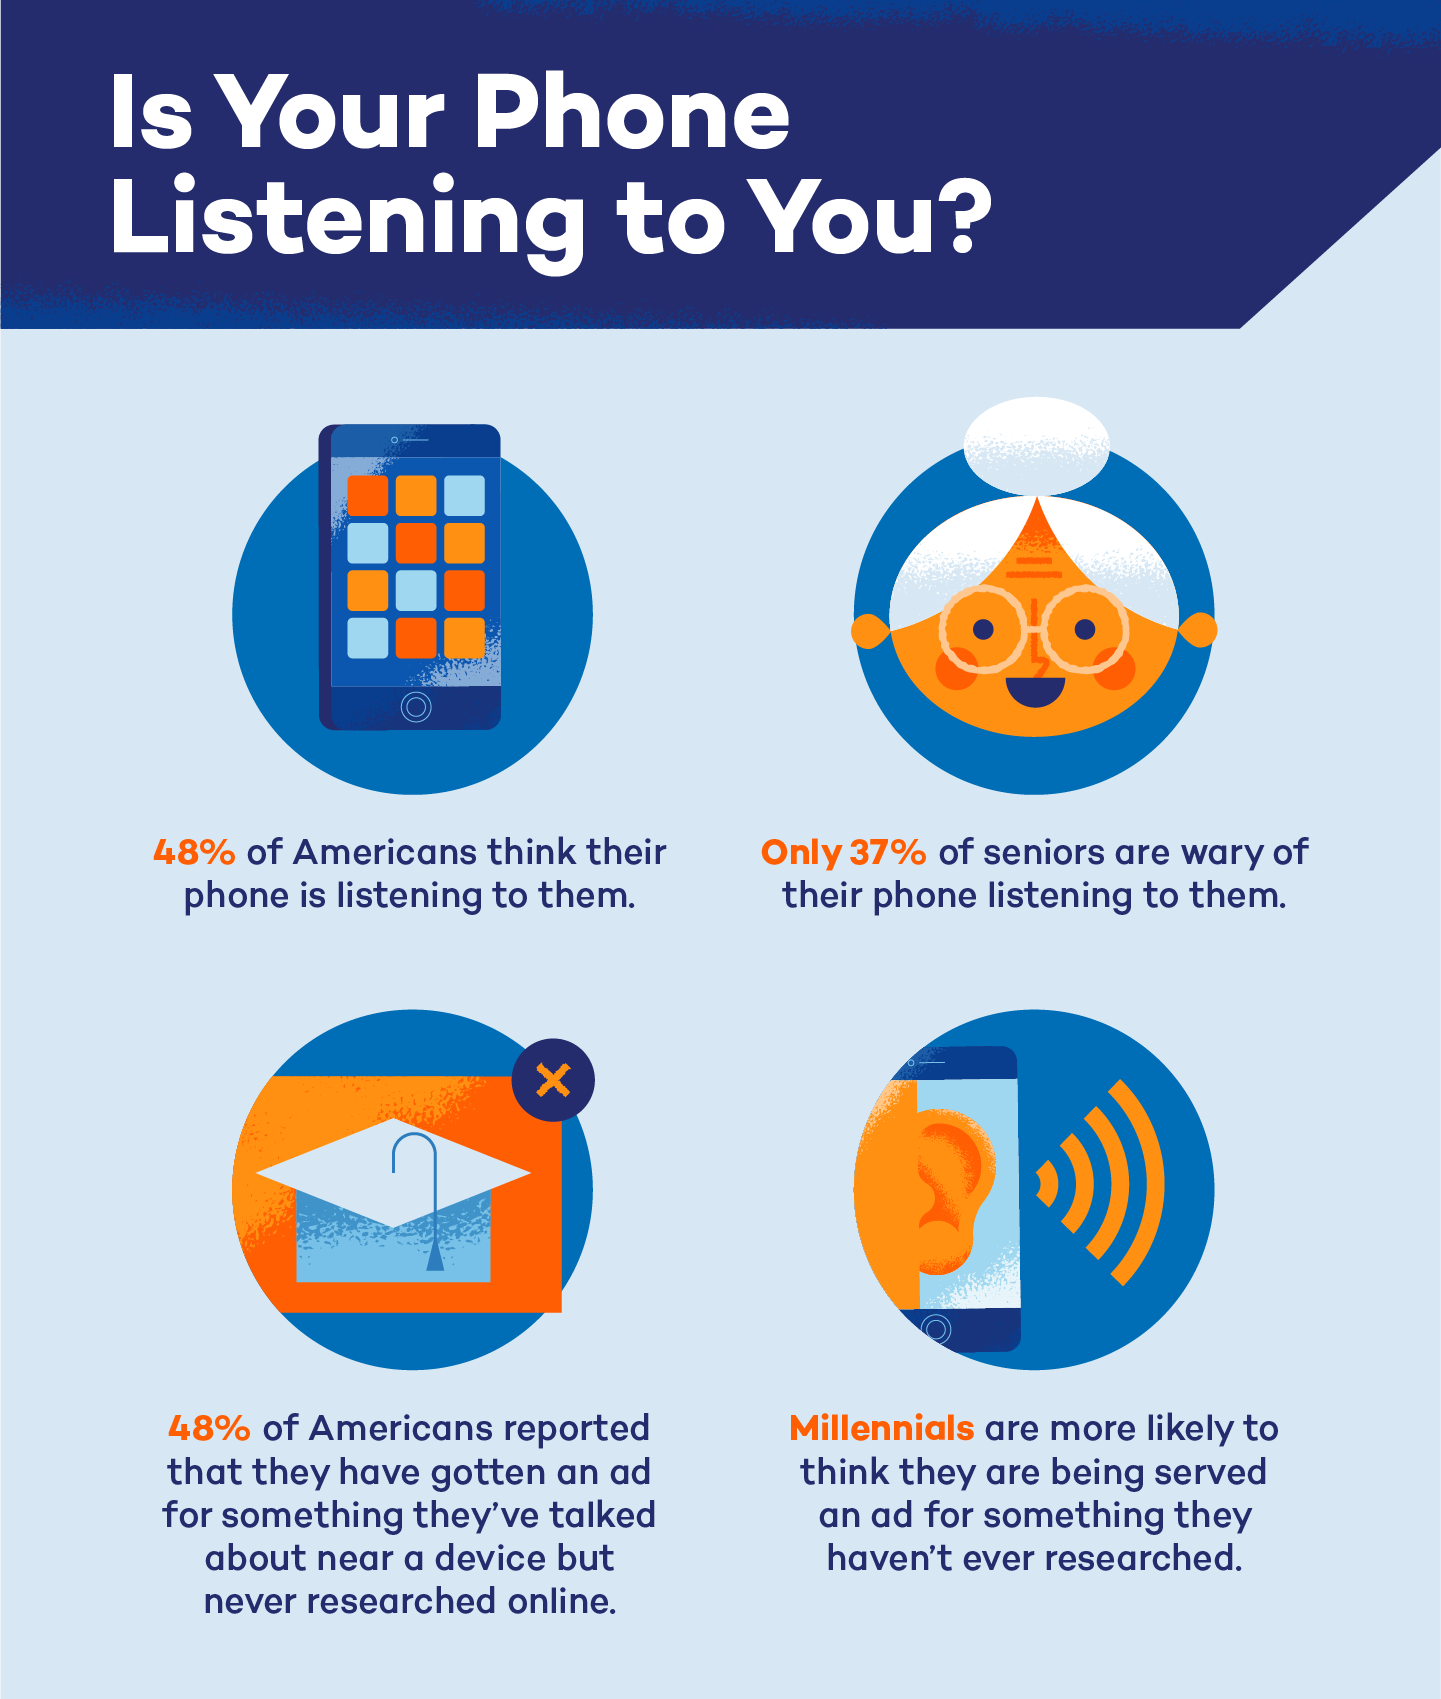 graphic of if people think their phone is listening